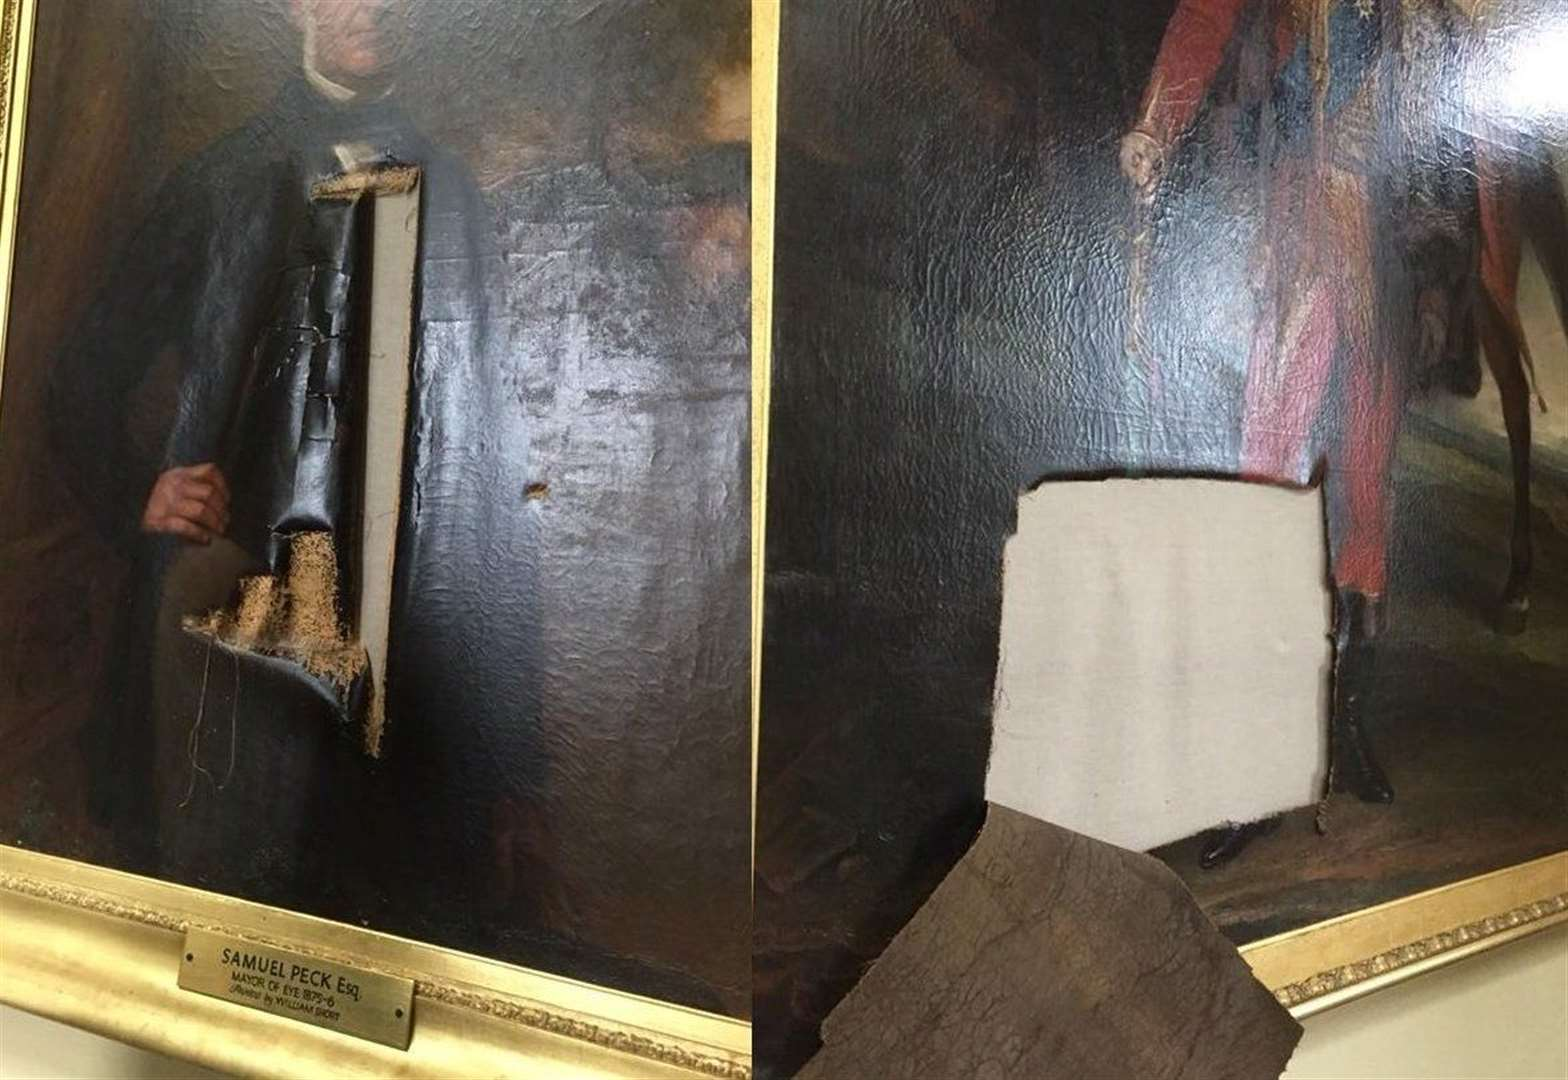 Man arrested in connection with damage to historic paintings at Eye Town Hall